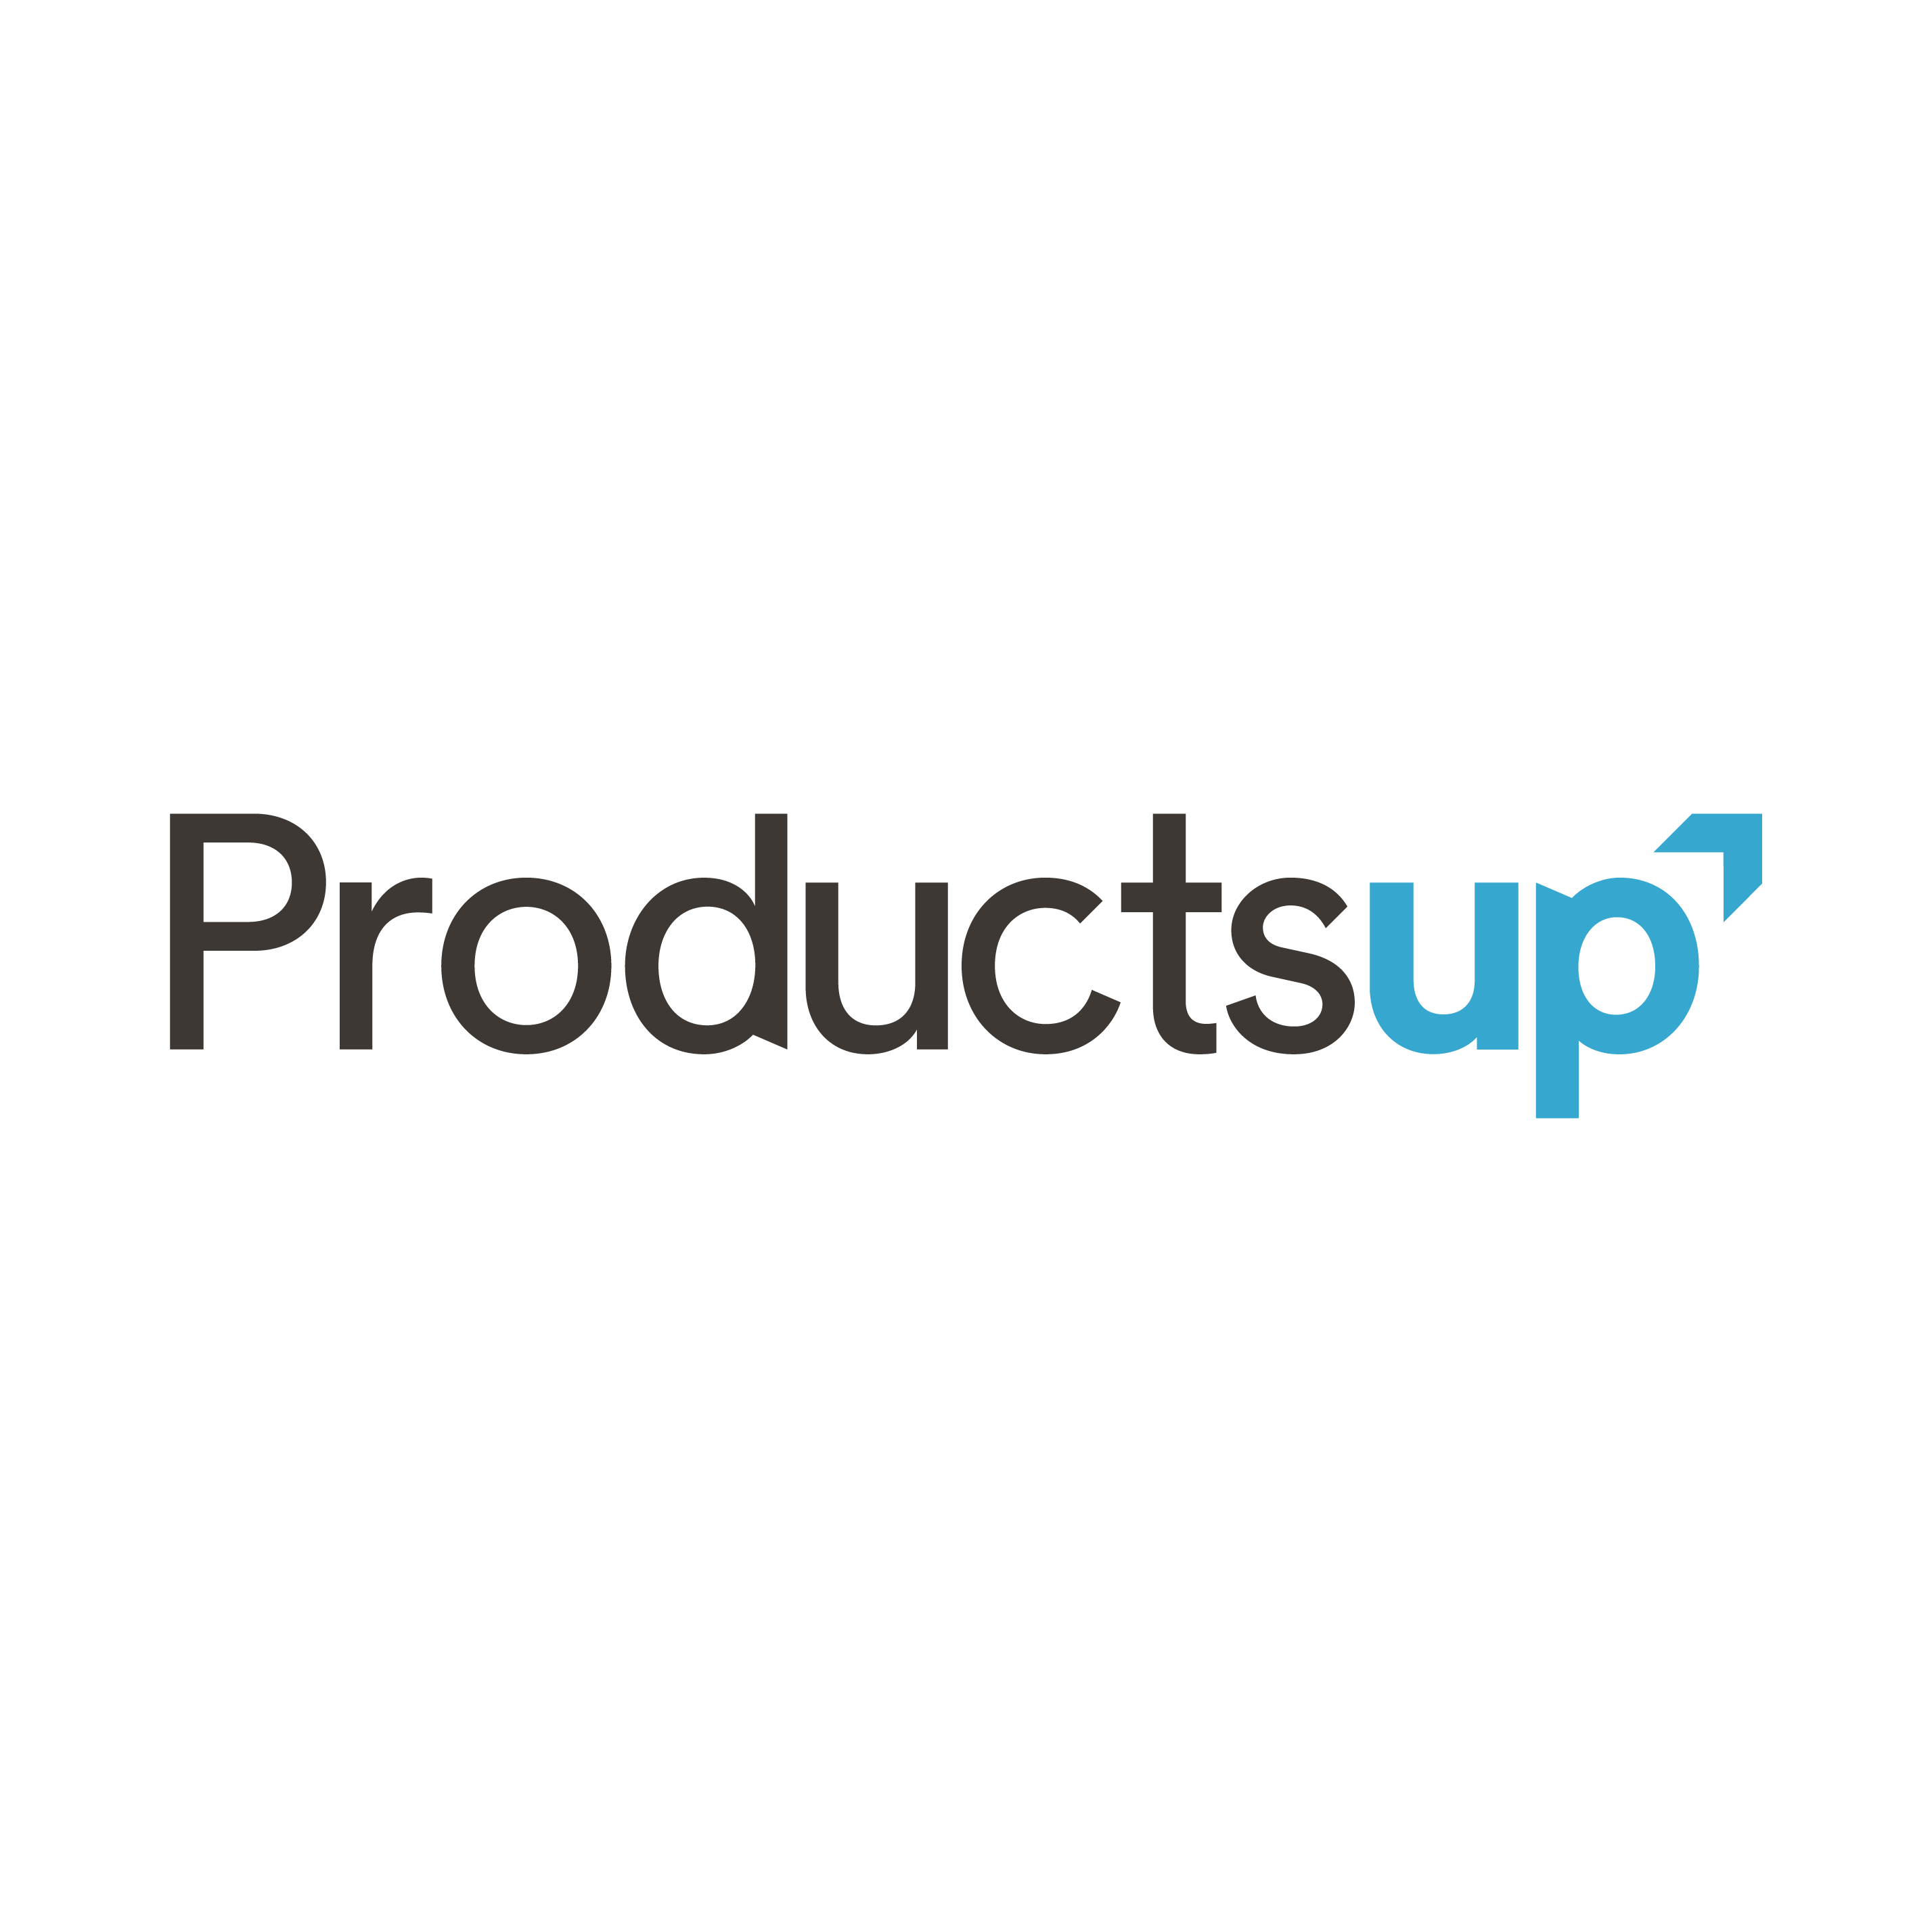 productsup business sticks stones verzeichnis partner